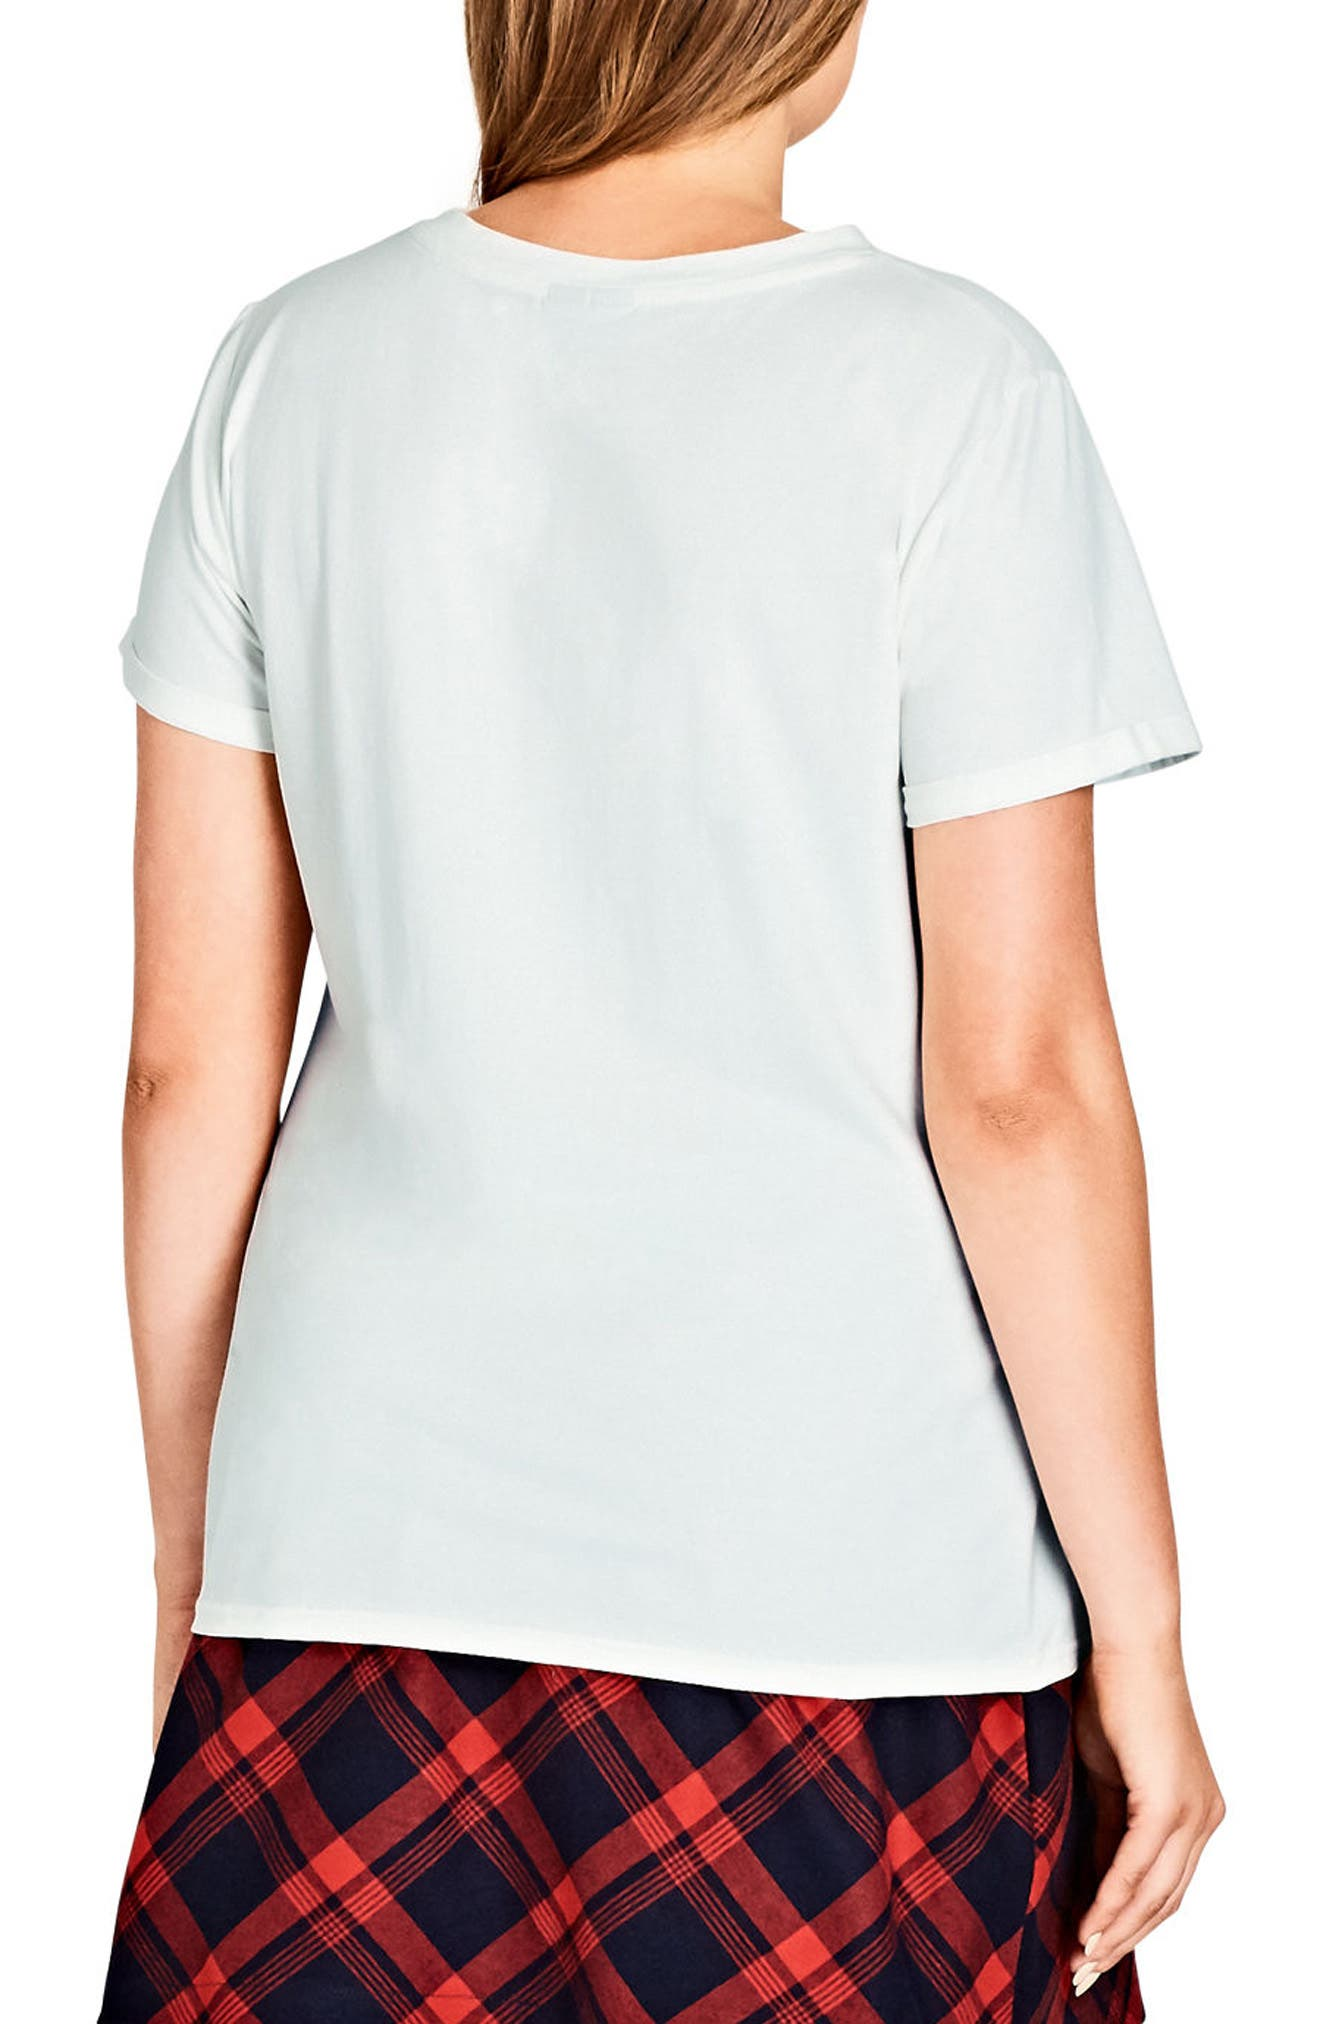 Alternate Image 2  - City Chic Clouds Tee (Plus Size)